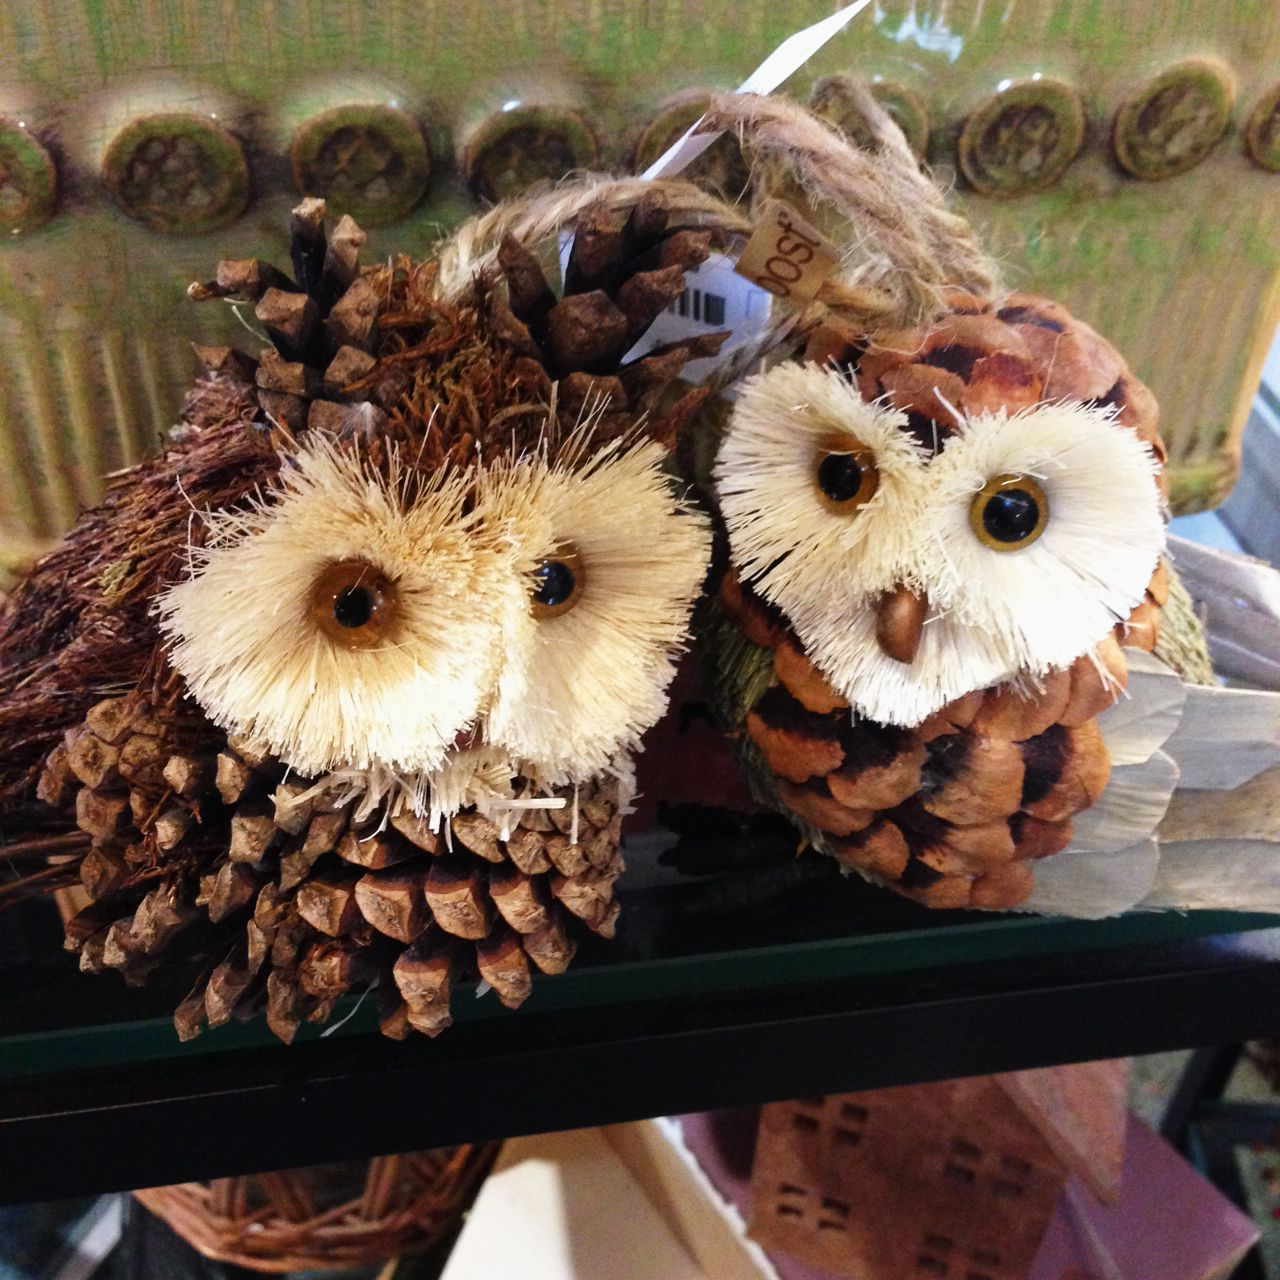 Affordable Owl Holiday Decor Gift Ideas For The Home: Woodland Owl Ornament Www.doorcountyinteriors.com